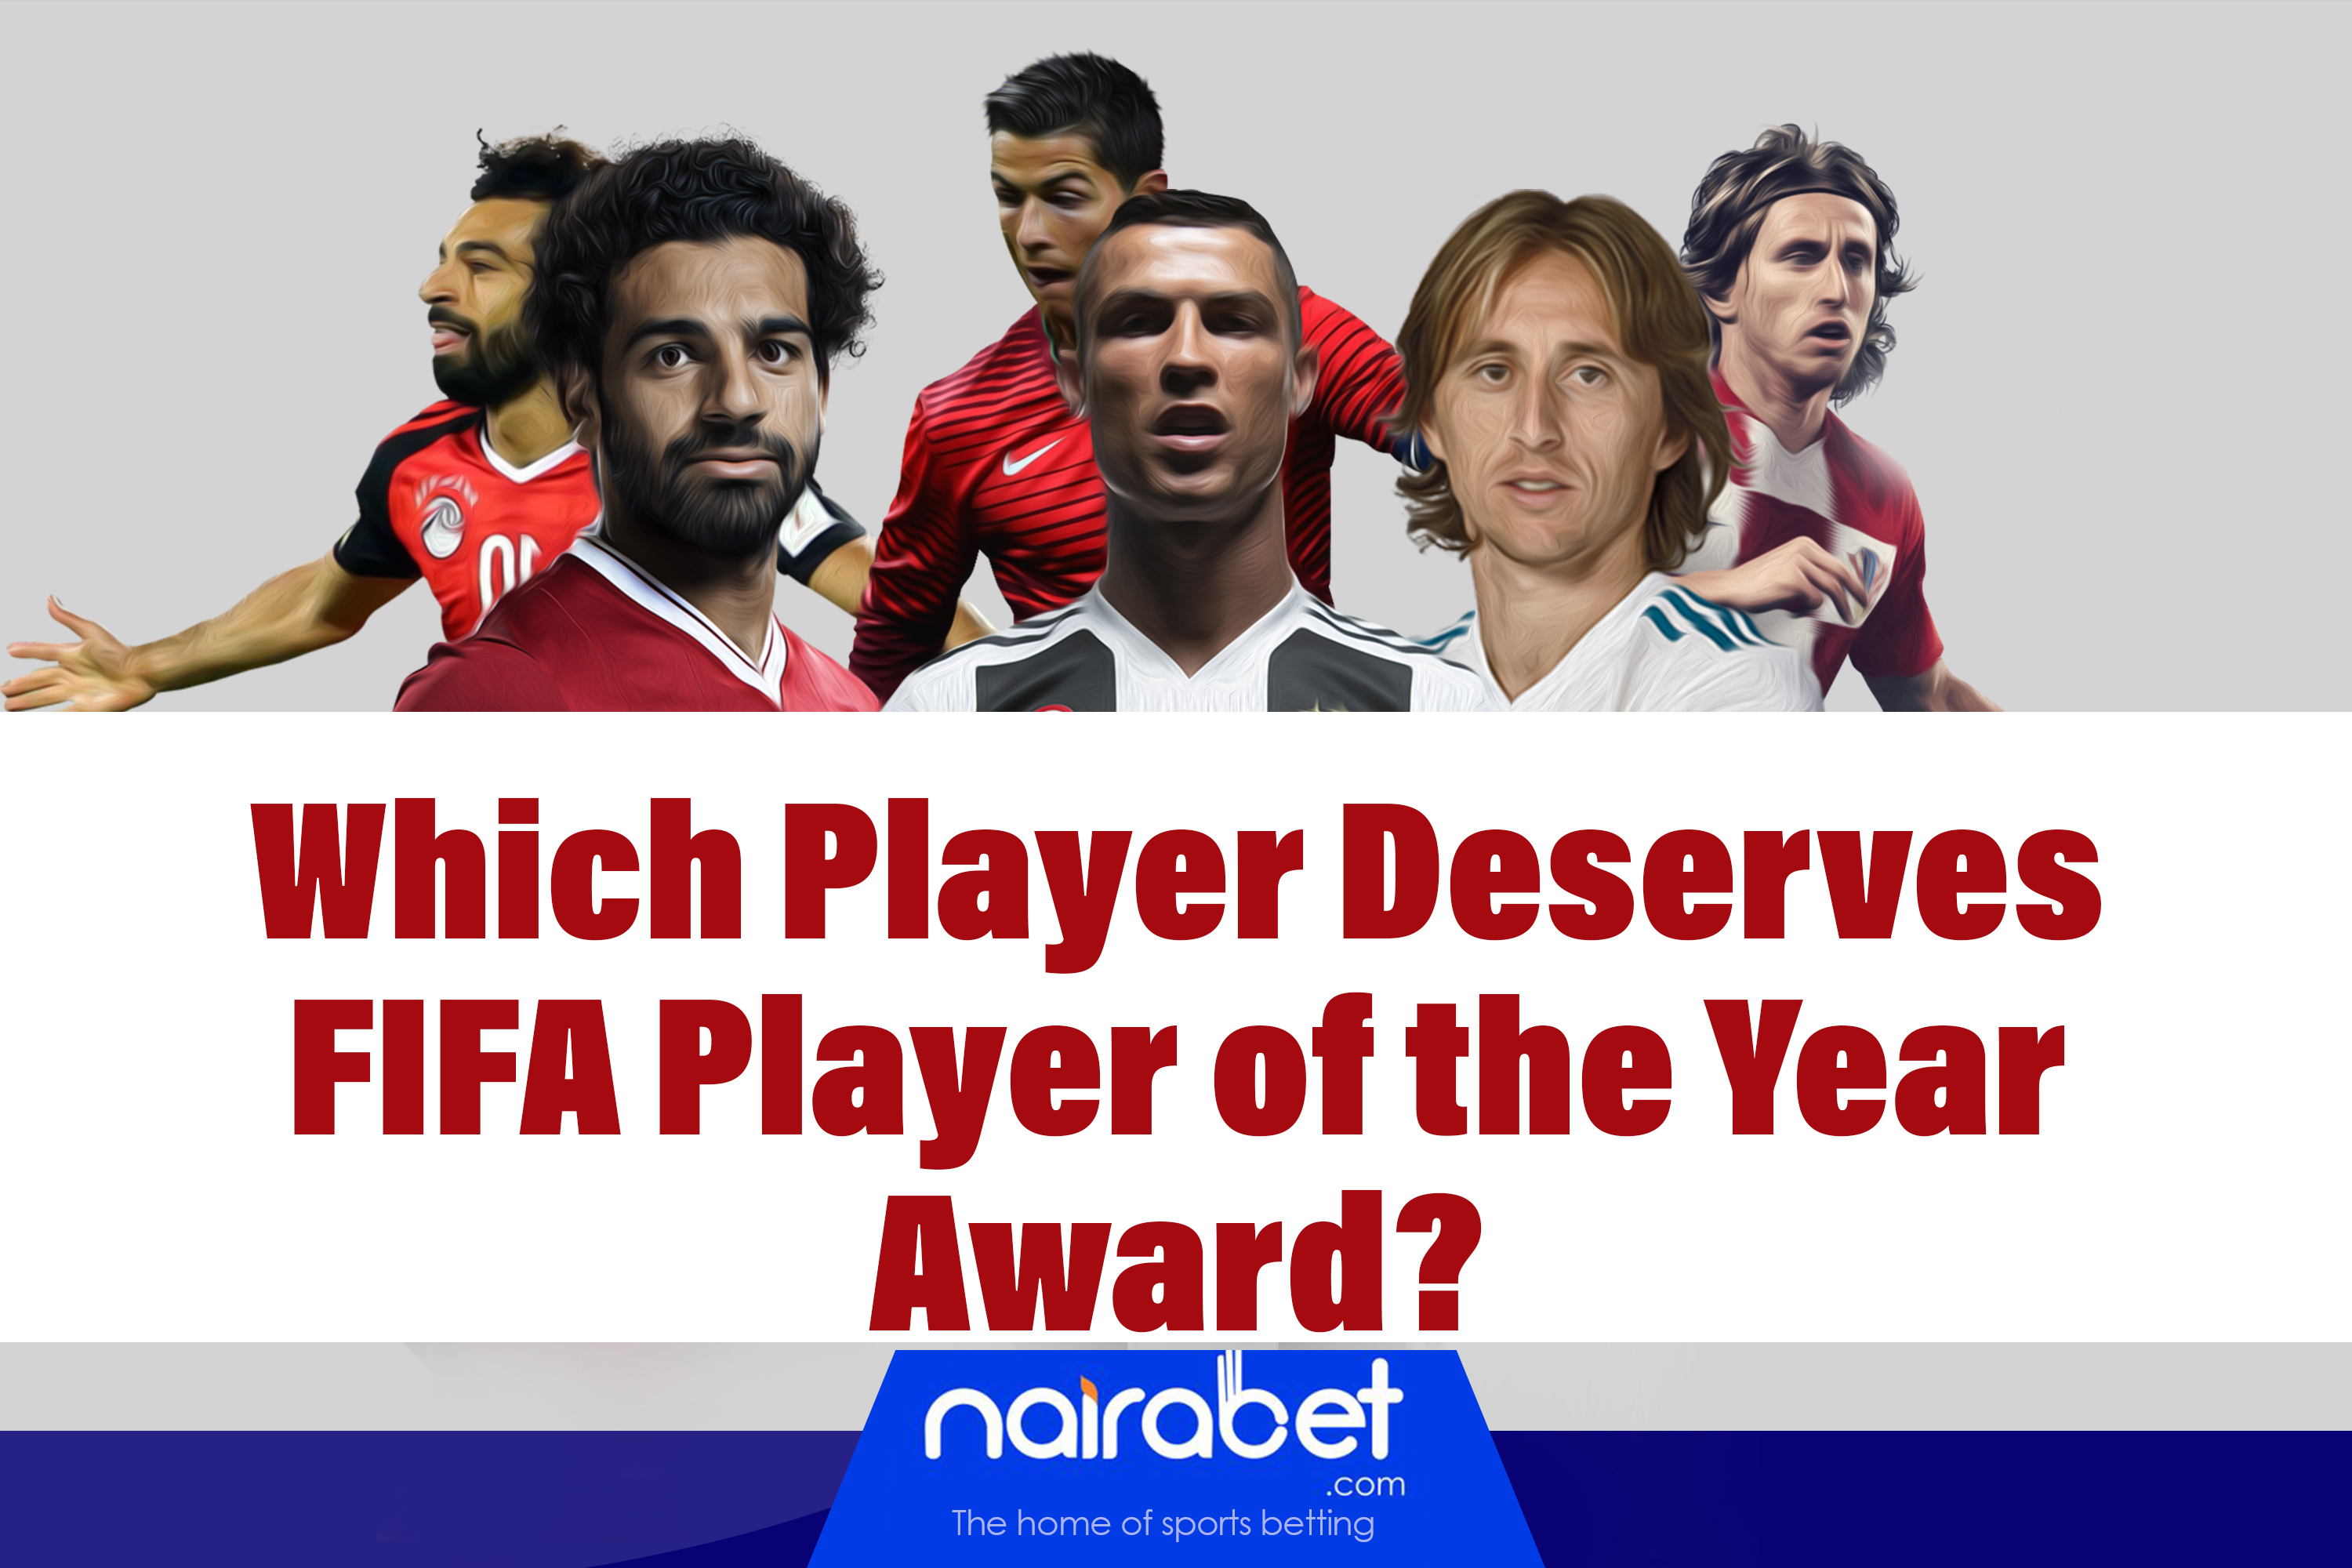 fifa player of the year award